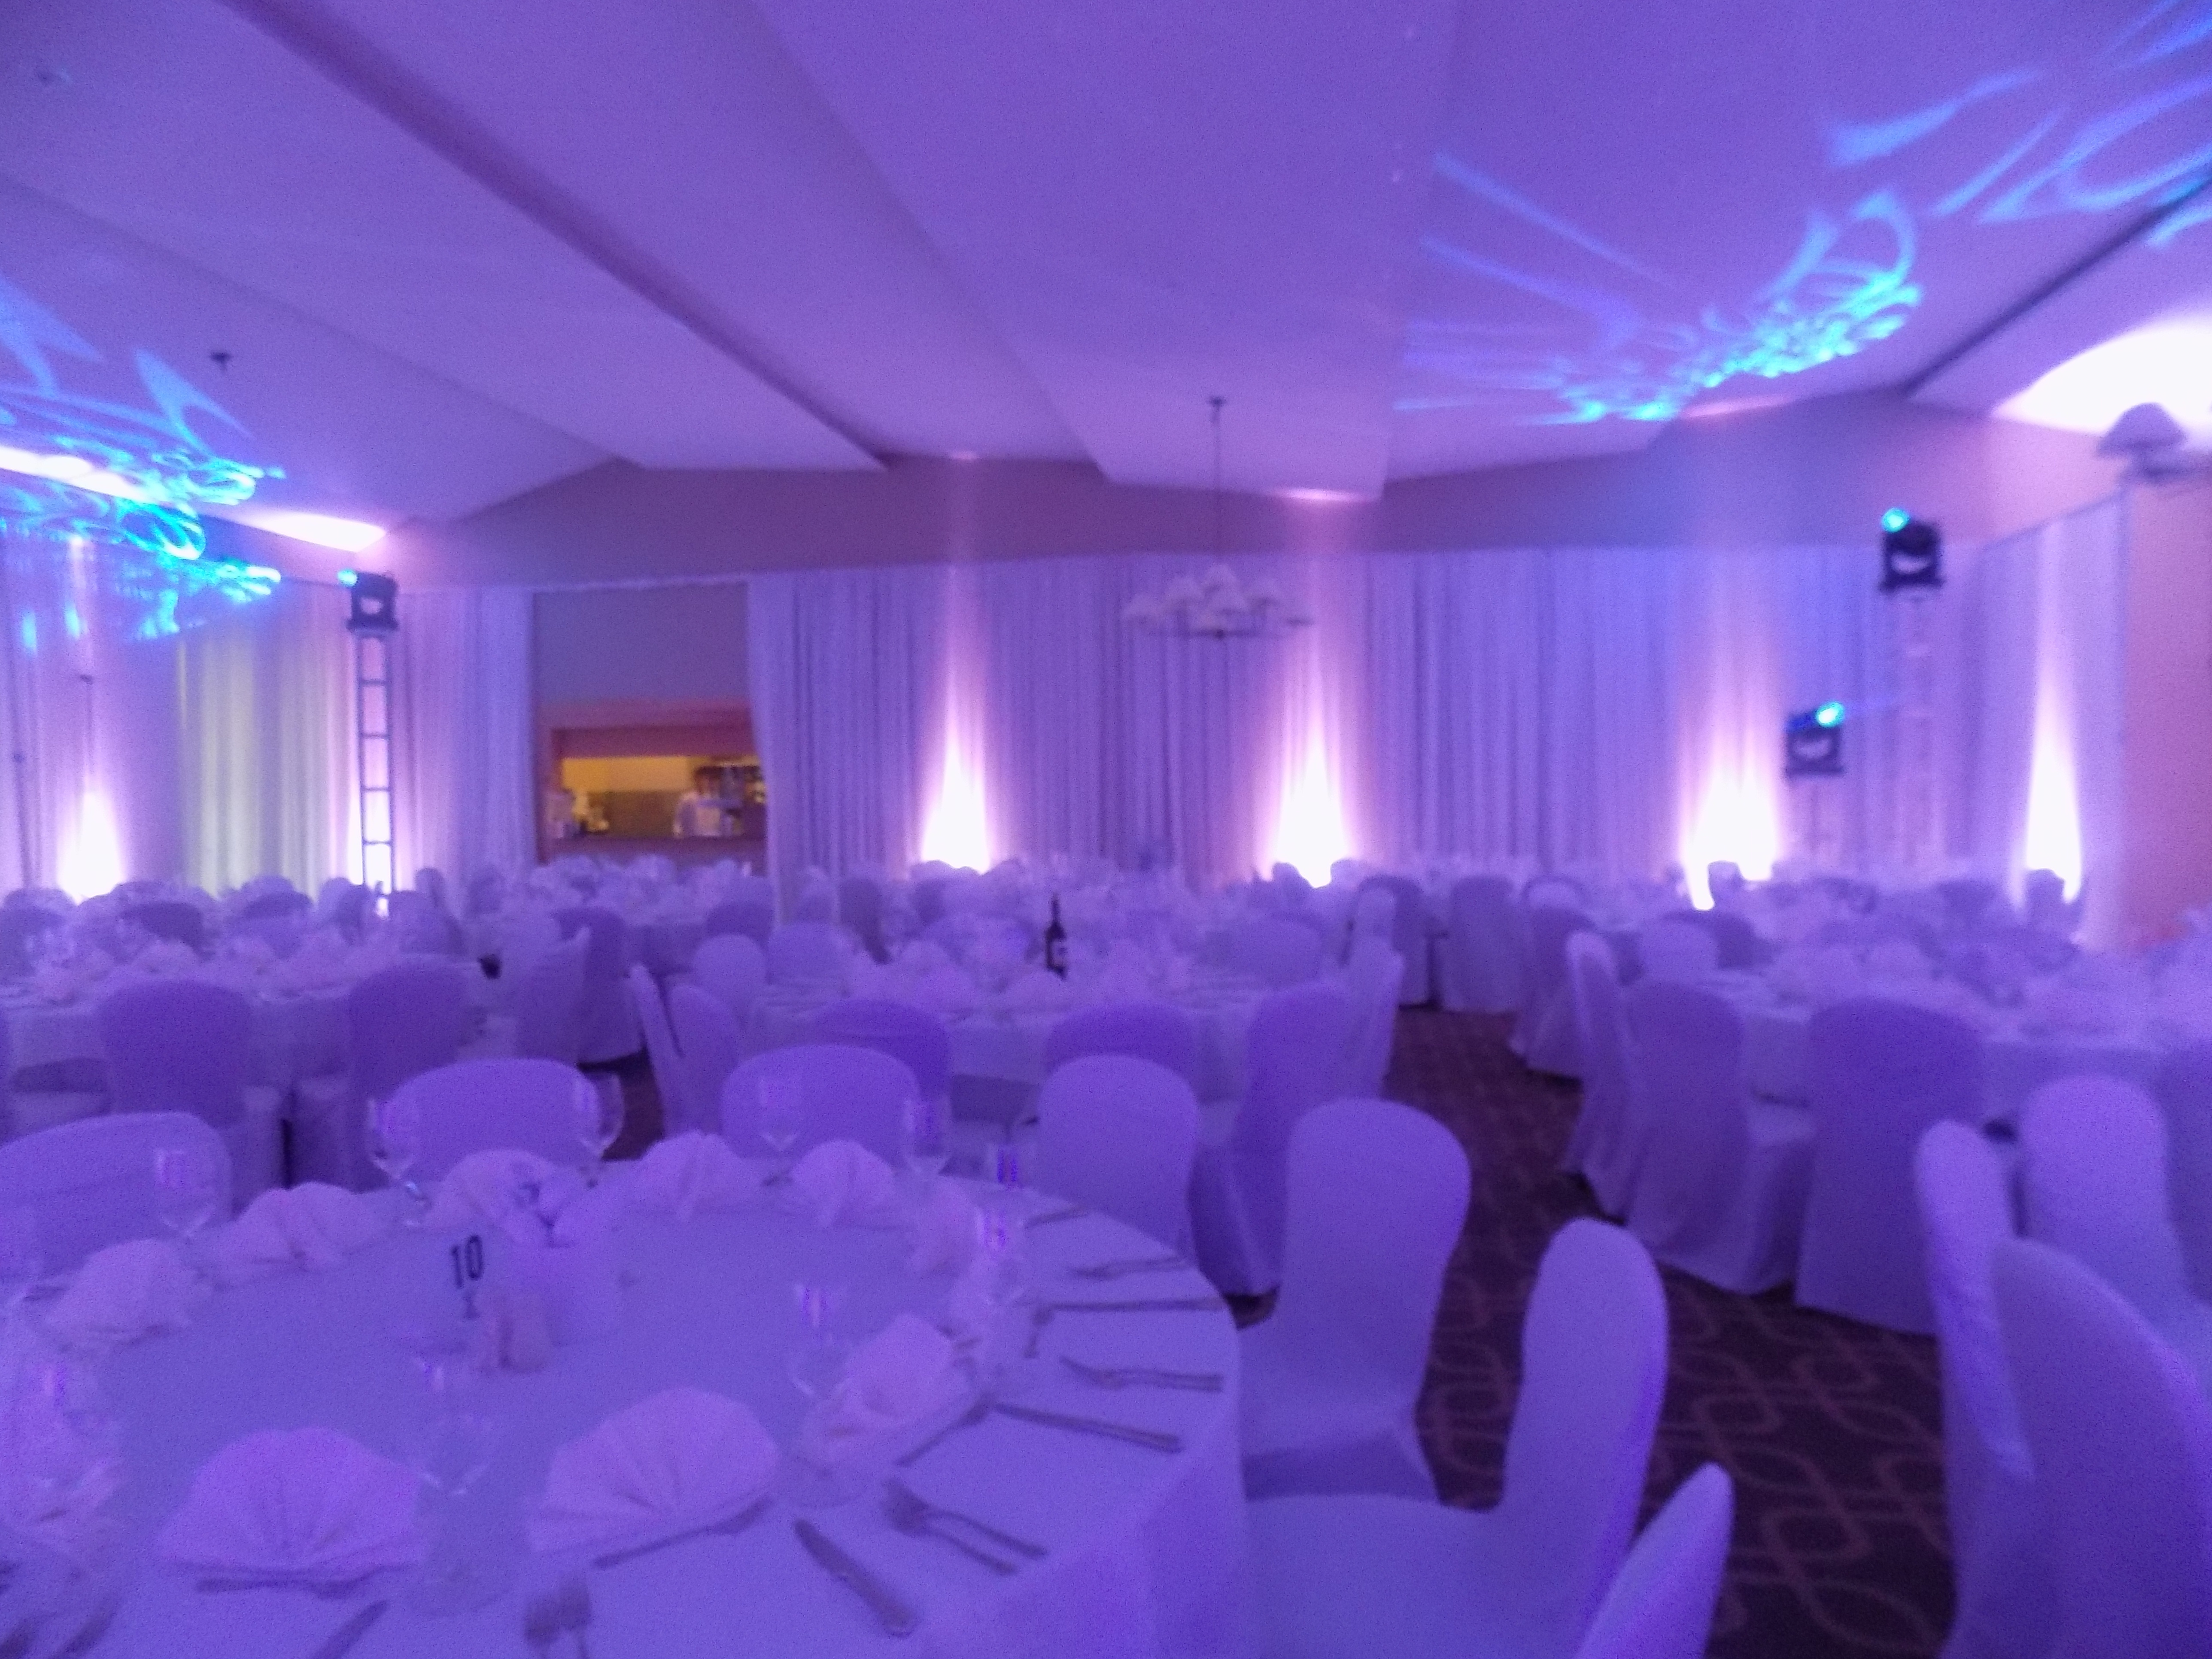 Dramatic Uplighting and decor set the mood for a fundraising gala at Hazelitne National Golf Club